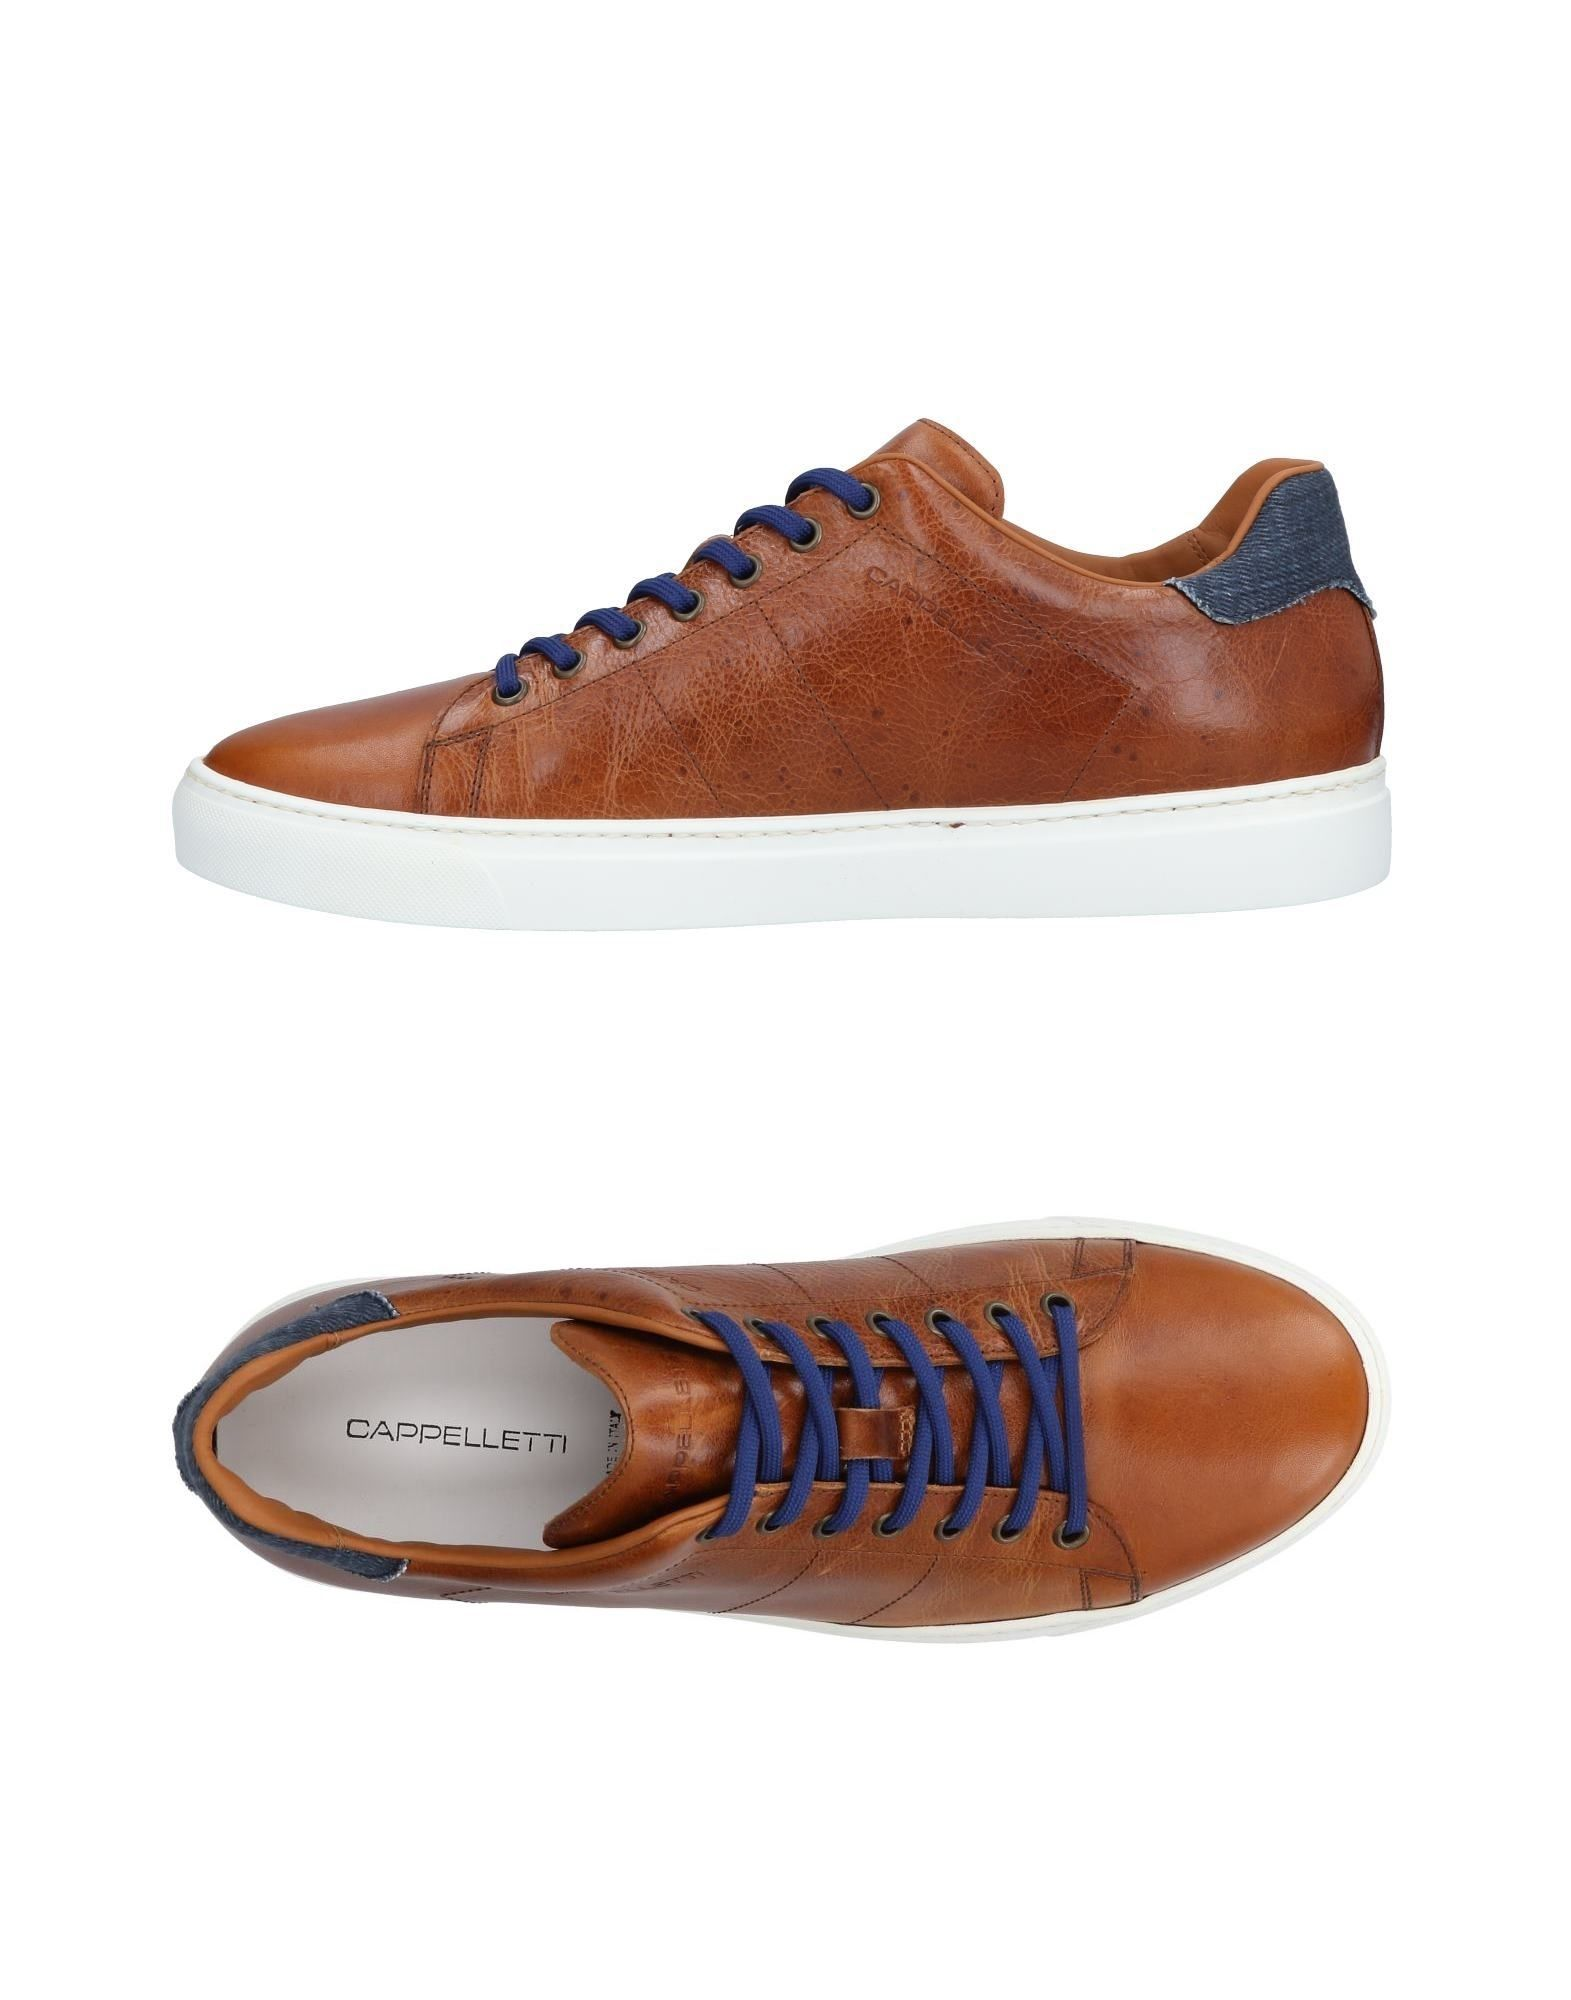 CAPPELLETTI Laced Shoes in Brown